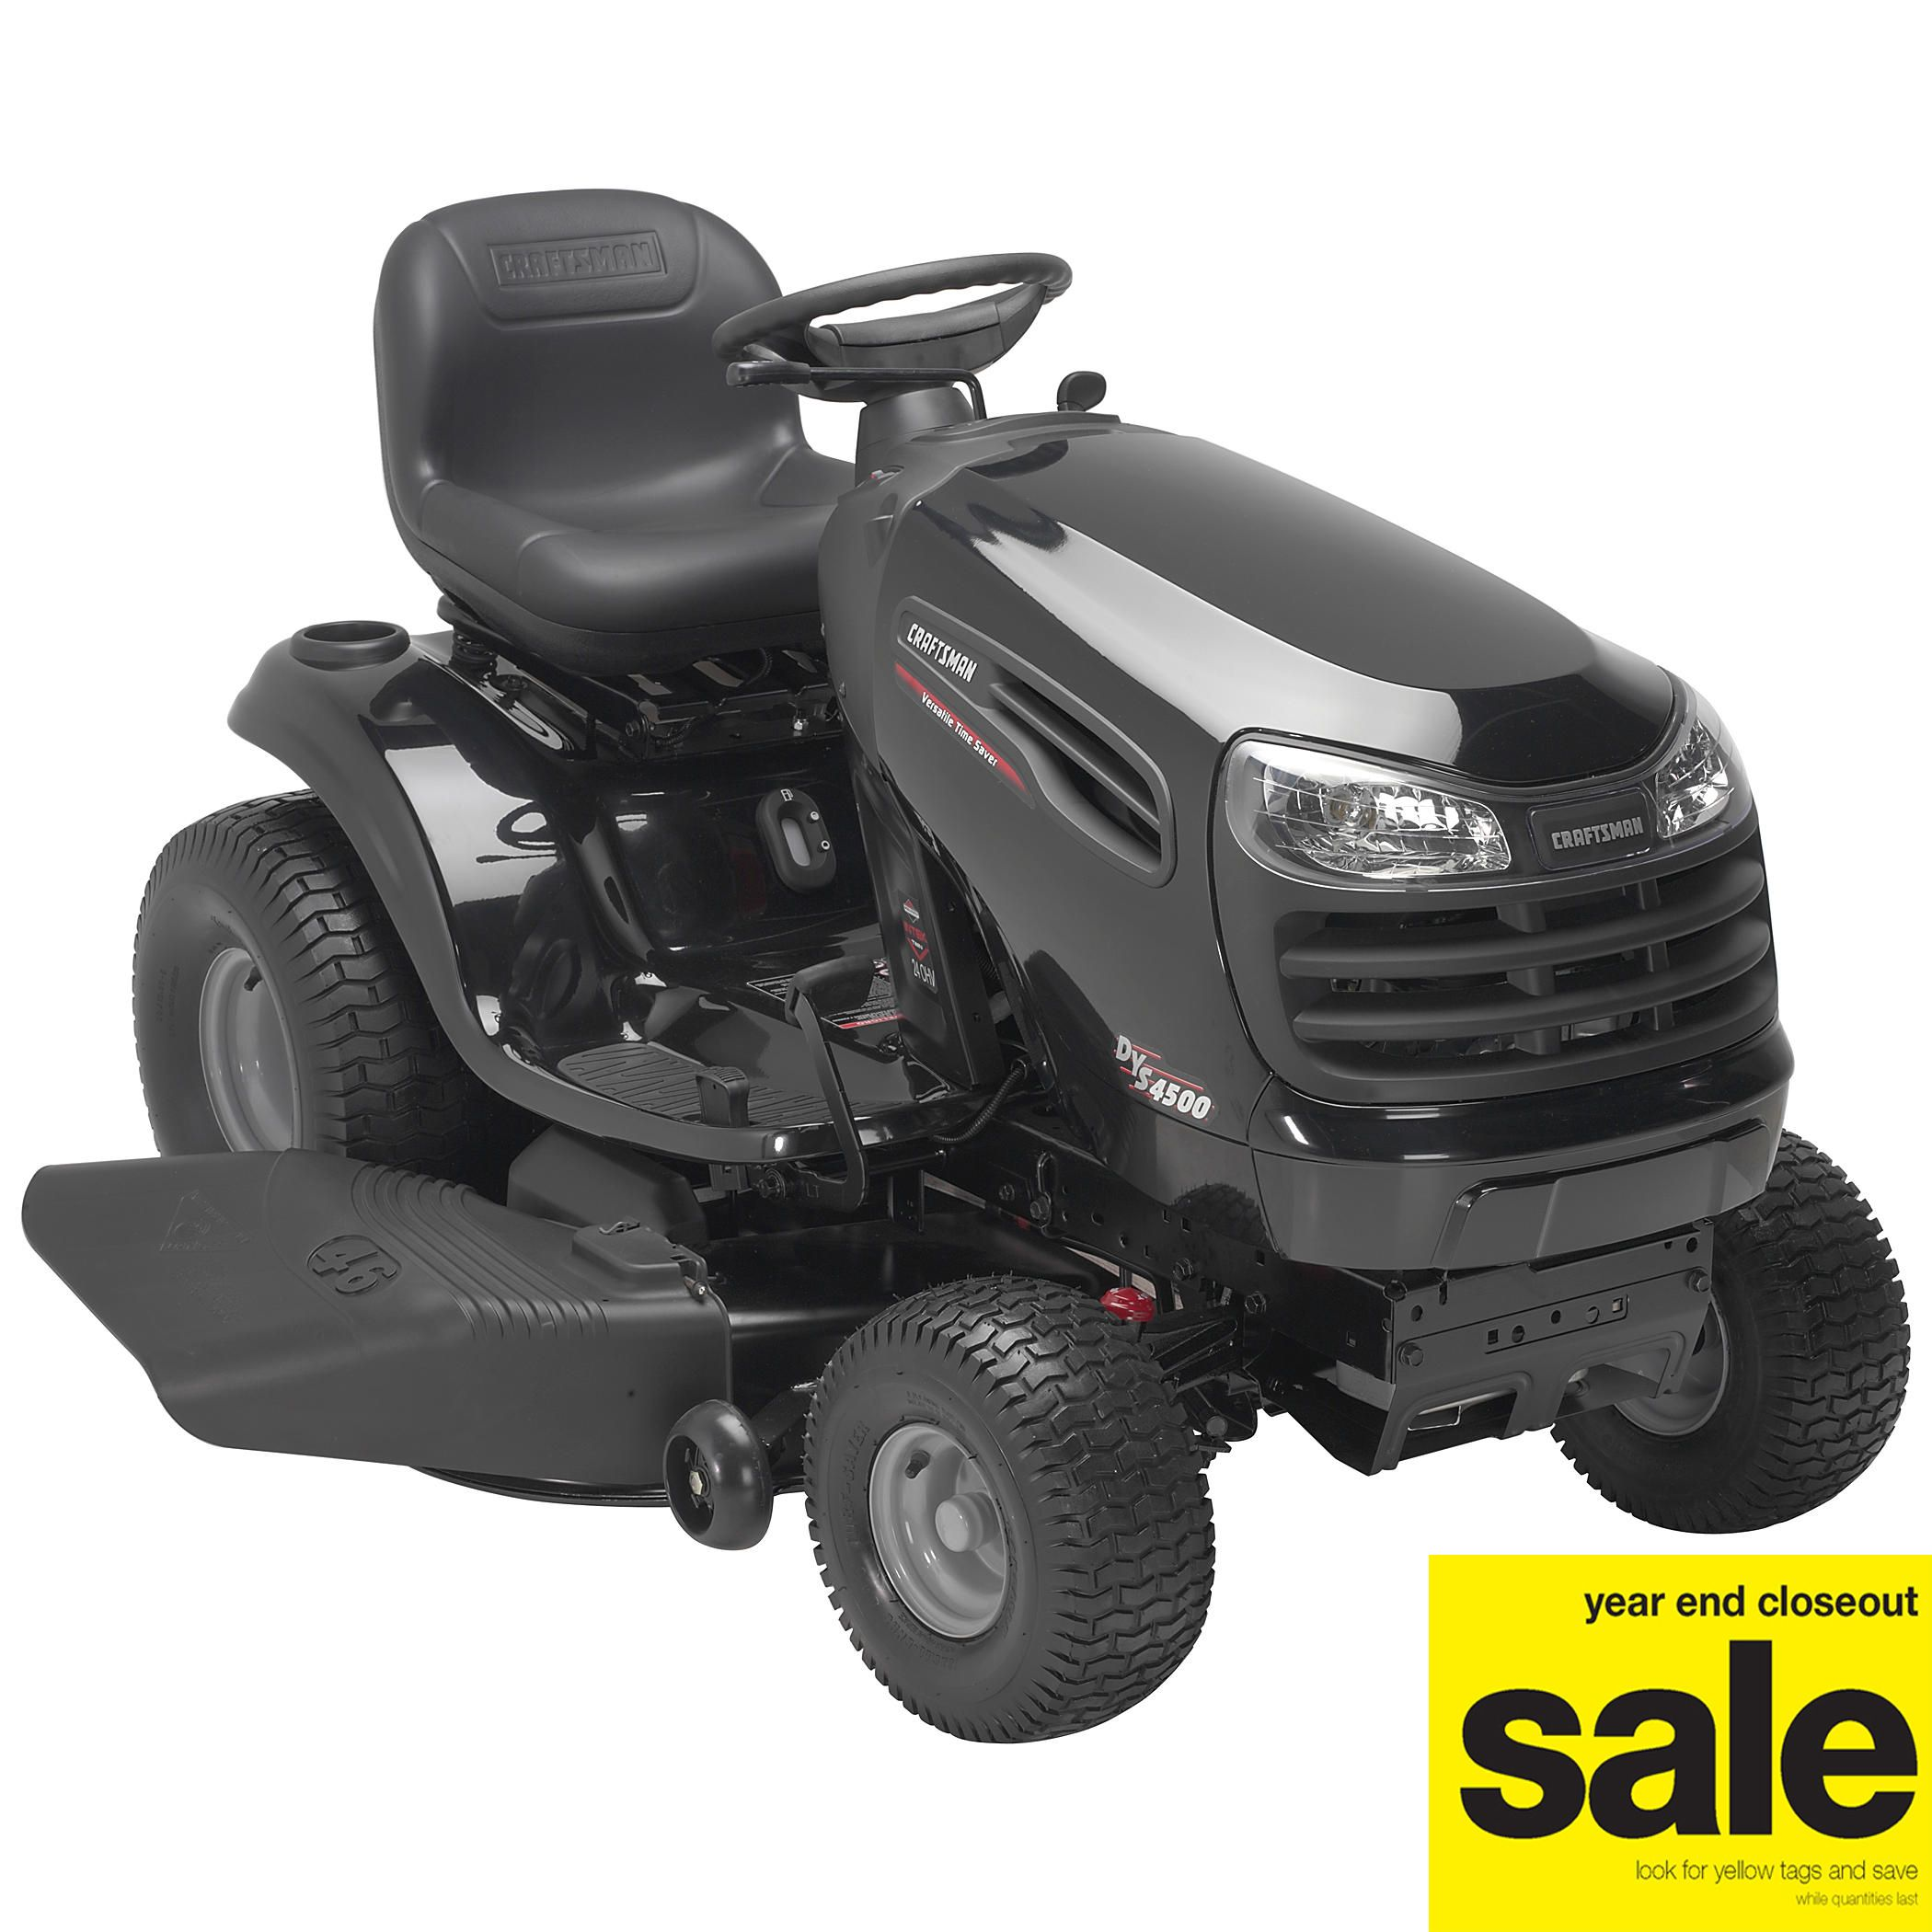 hight resolution of deck dys 4500 lawn tractor